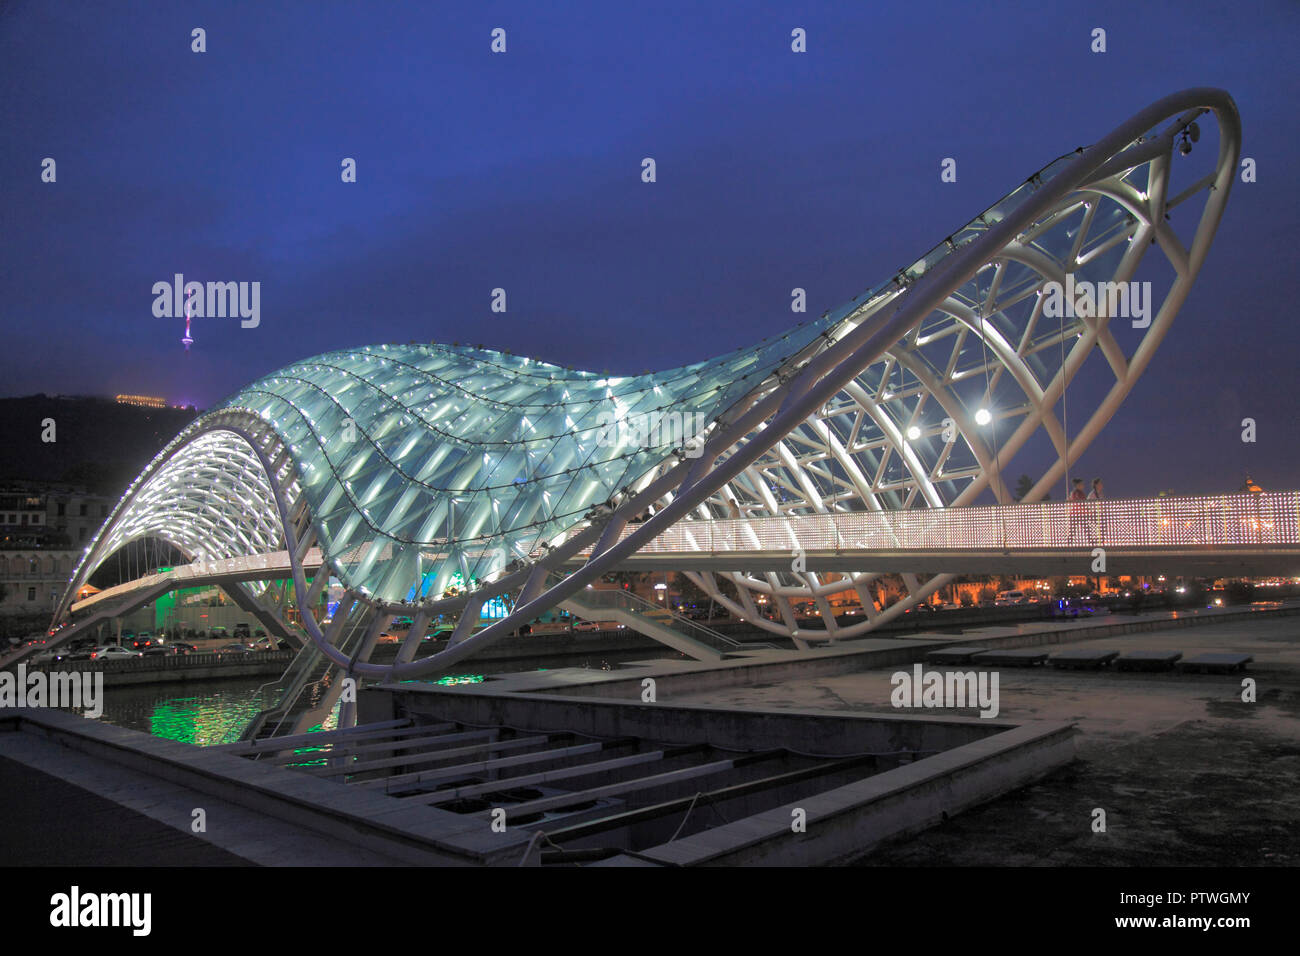 82da57efed Georgia, Tbilisi, Peace Bridge, Michele de Lucchi architect, - Stock Image